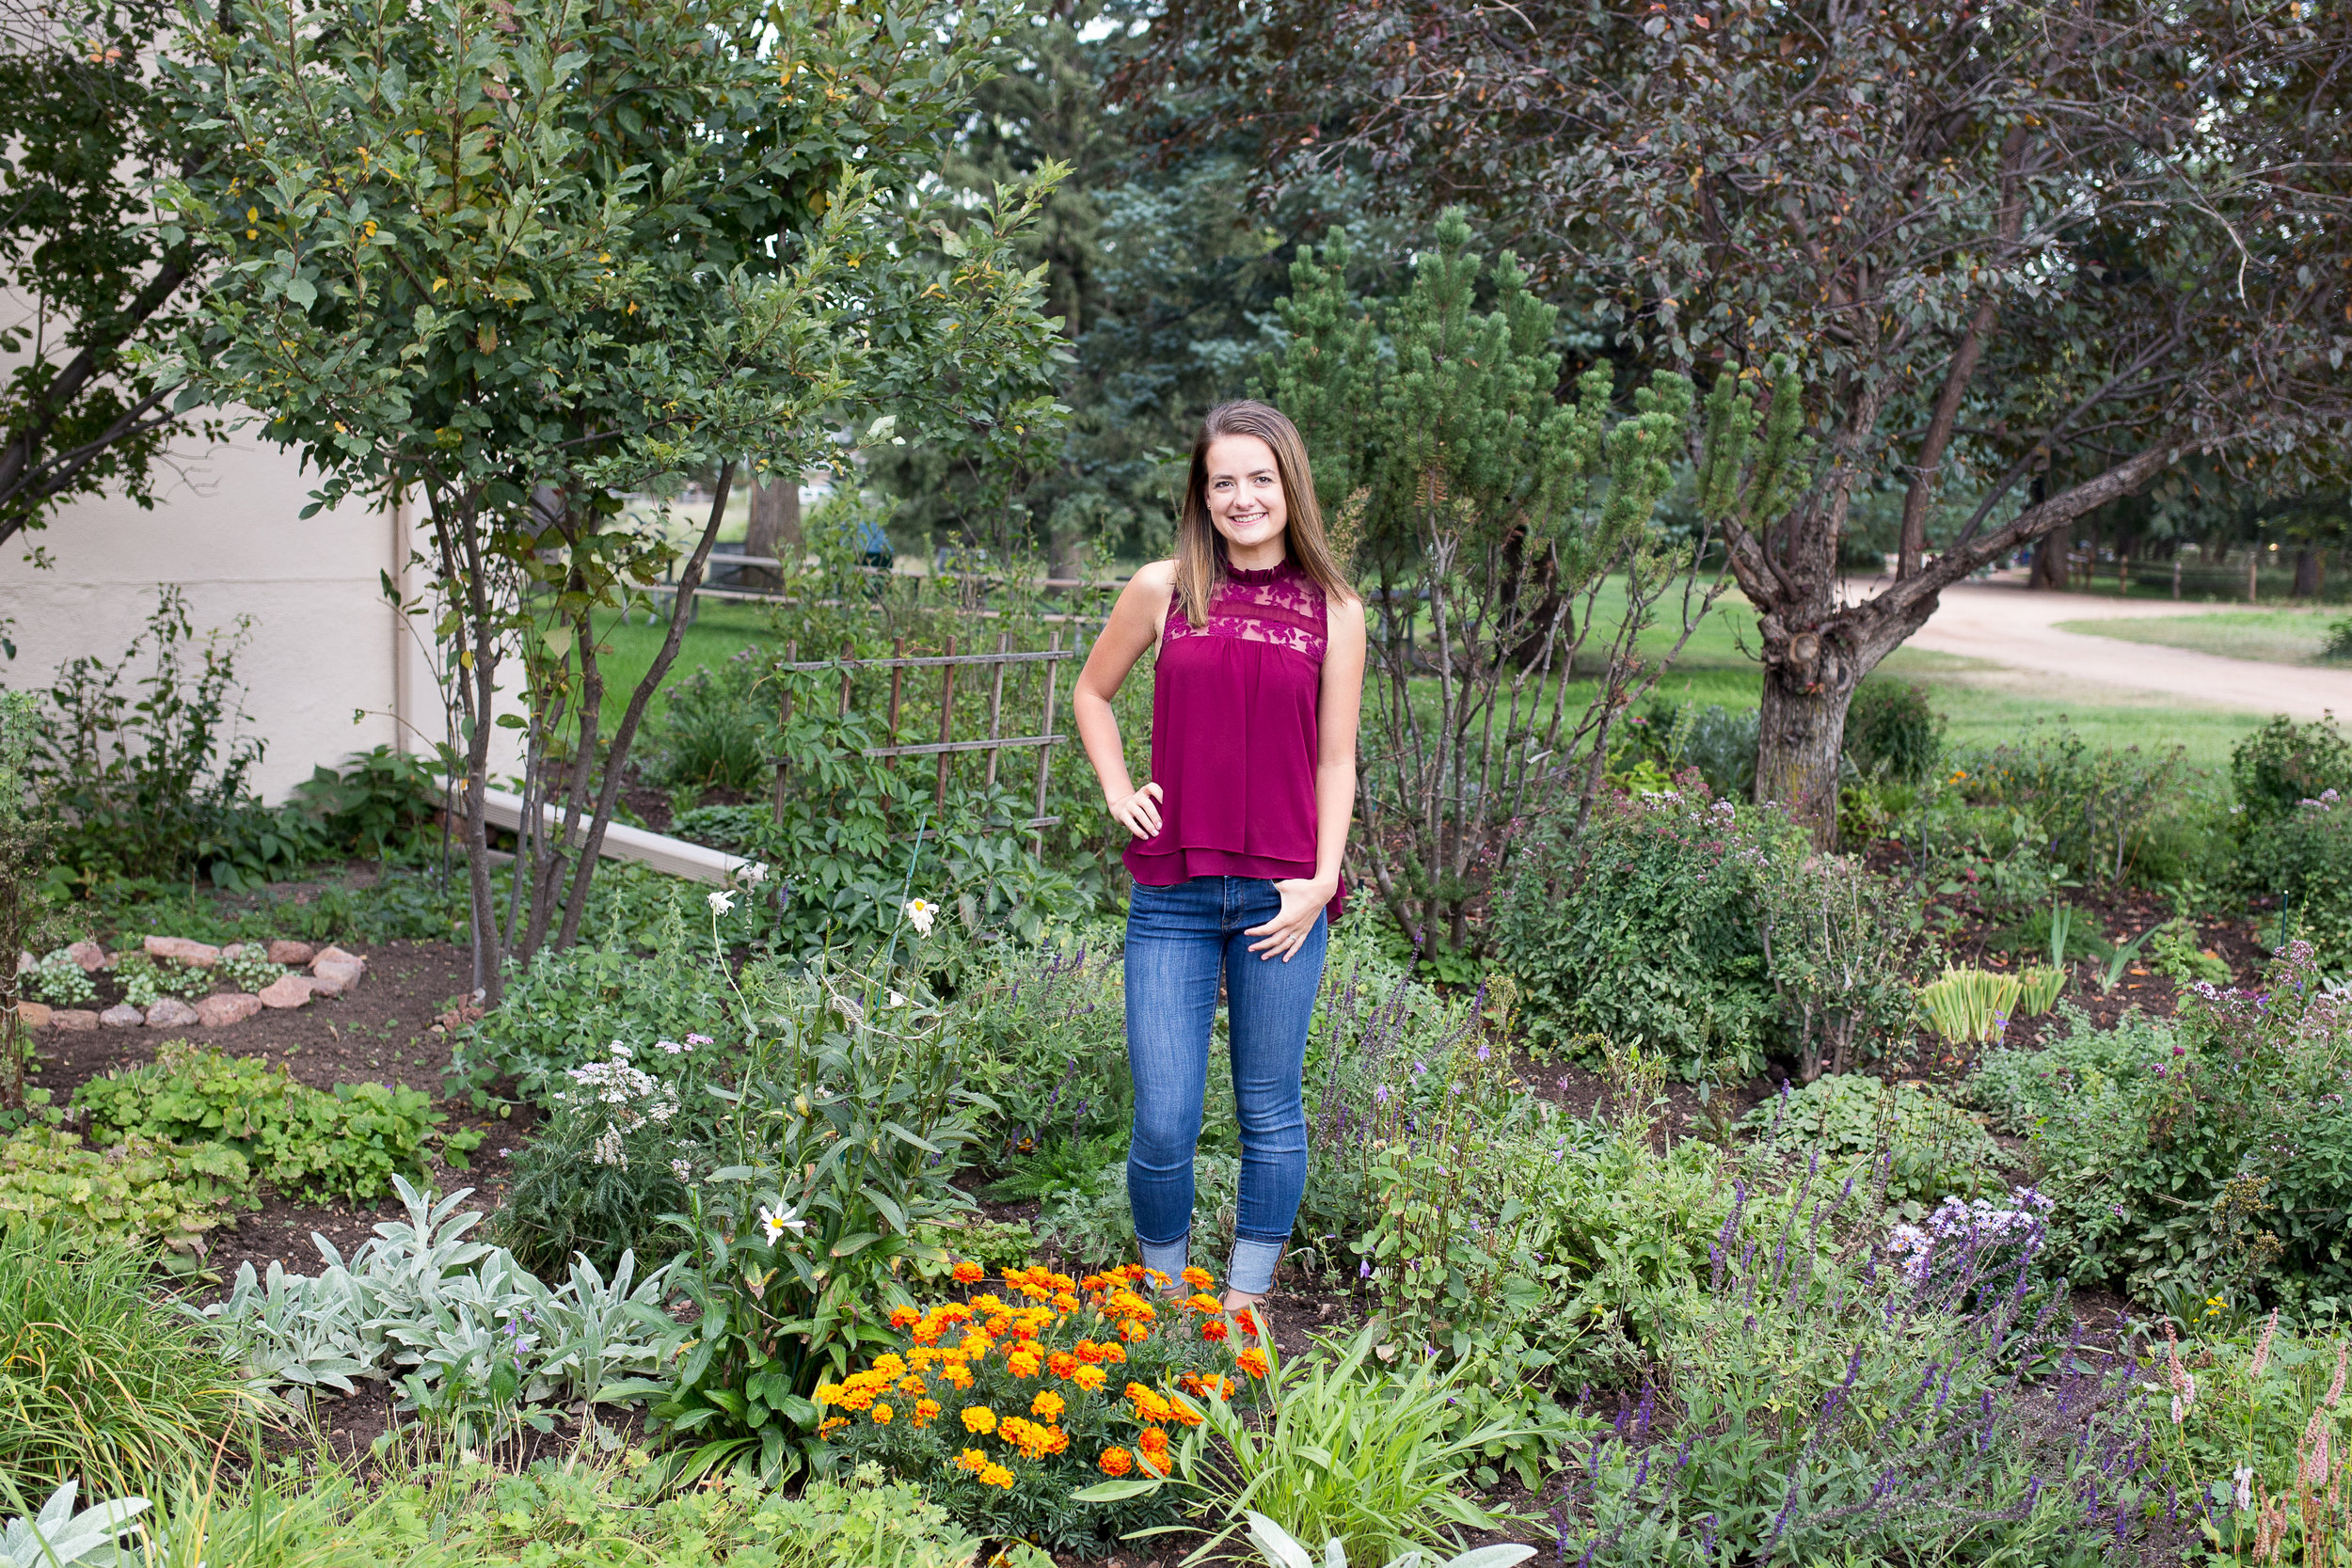 Standing among the fall flowers with hand in her pocket for a senior photo session Rock Ledge Ranch Senior Photography Session in Colorado Springs Stacy Carosa Photography